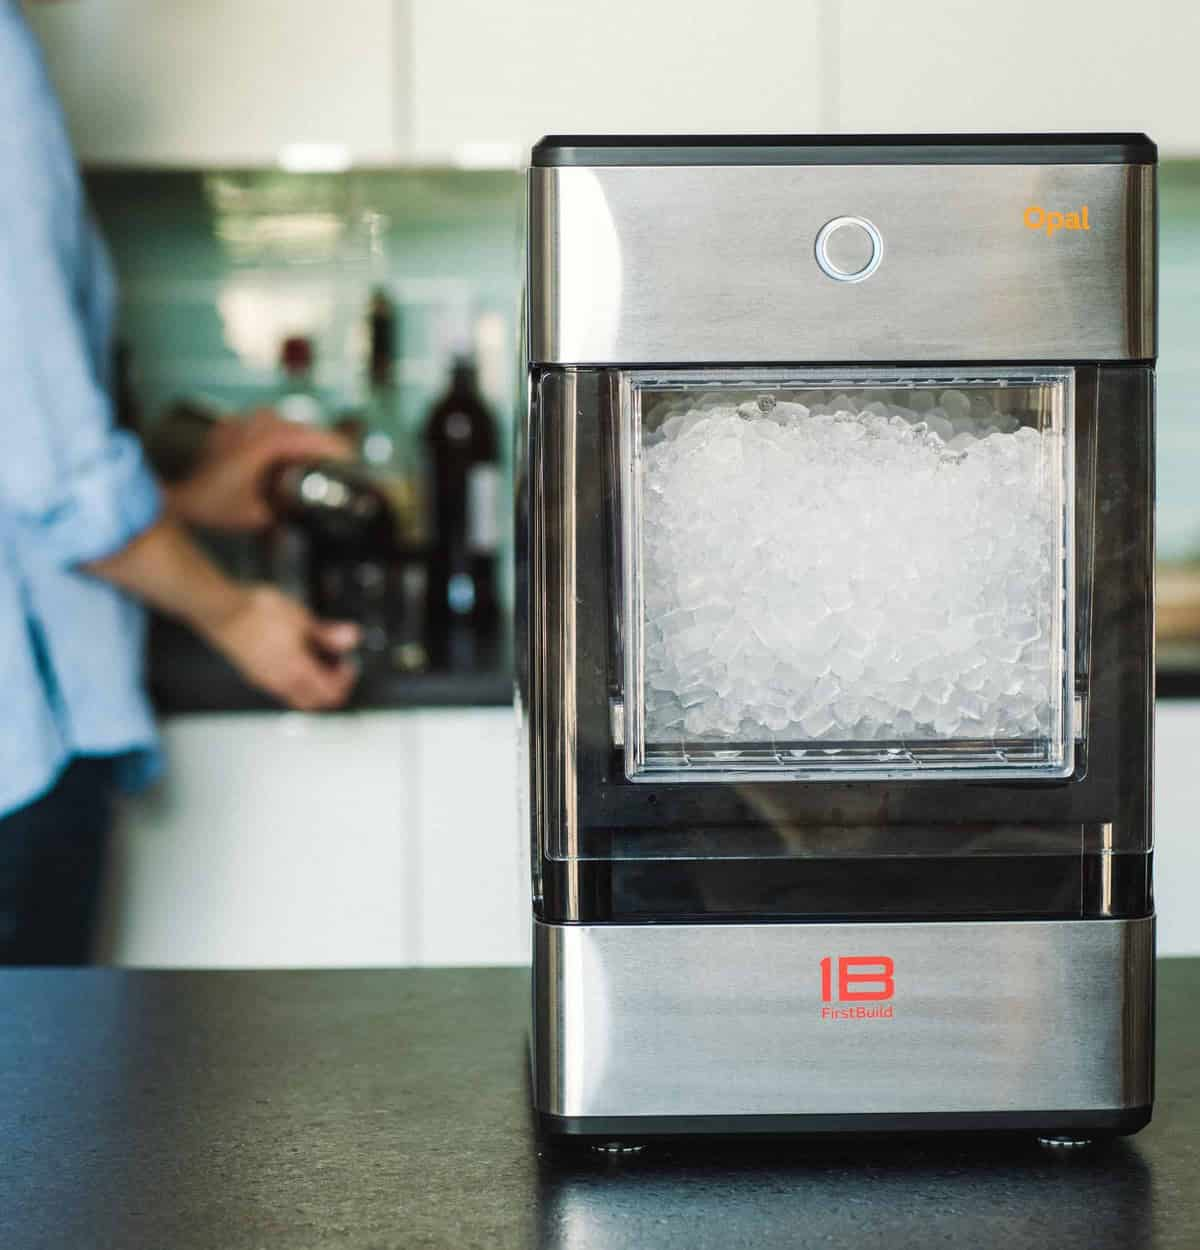 Opal Ice Maker - great gift for dad